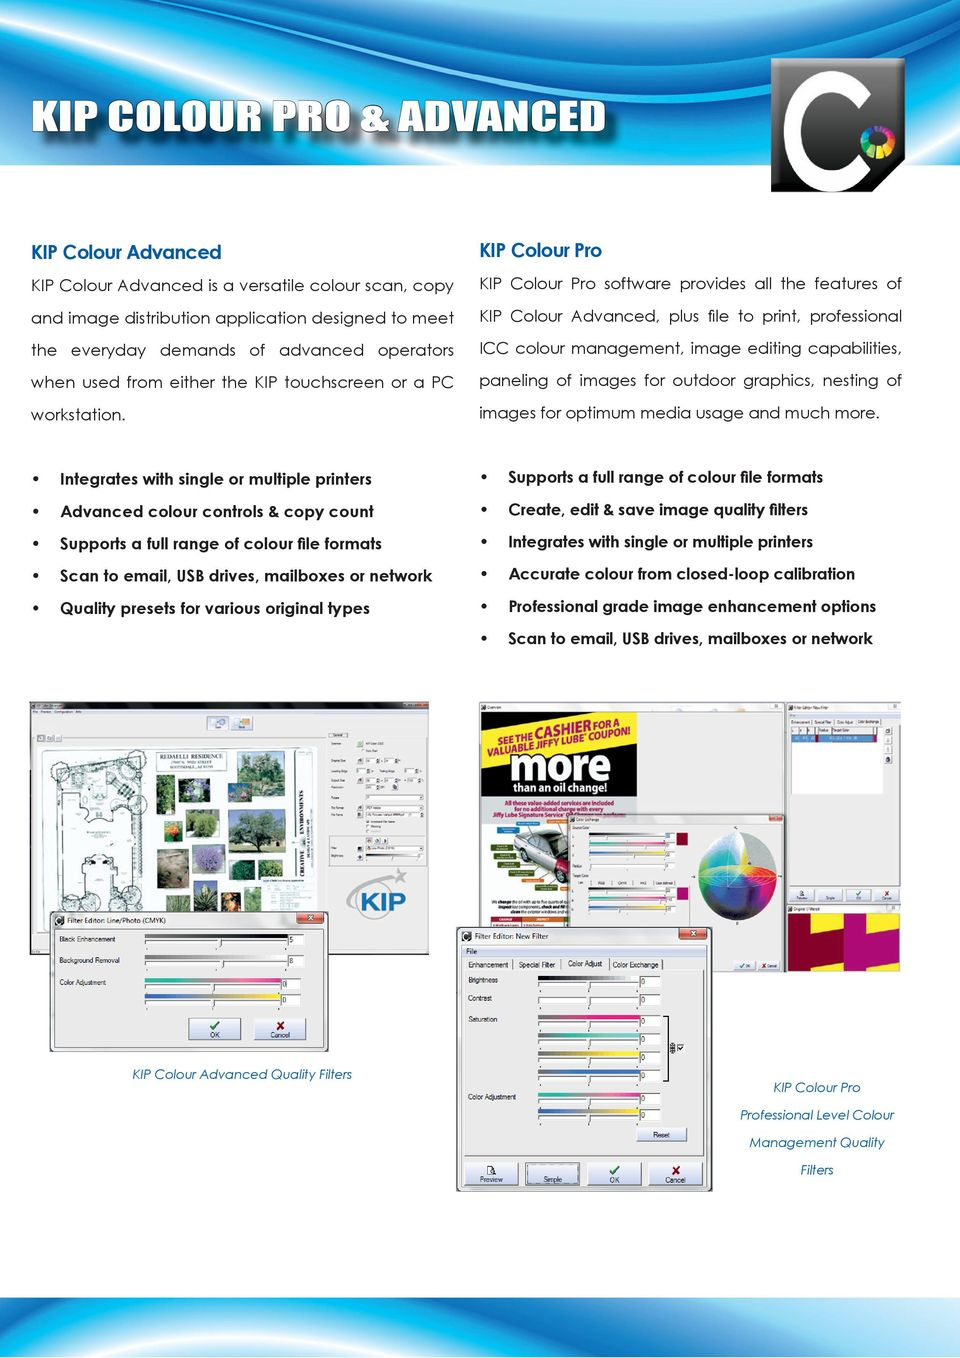 KIP Colour Pro KIP Colour Pro software provides all the features of KIP Colour Advanced, plus fi le to print, professional ICC colour management, image editing capabilities, paneling of images for